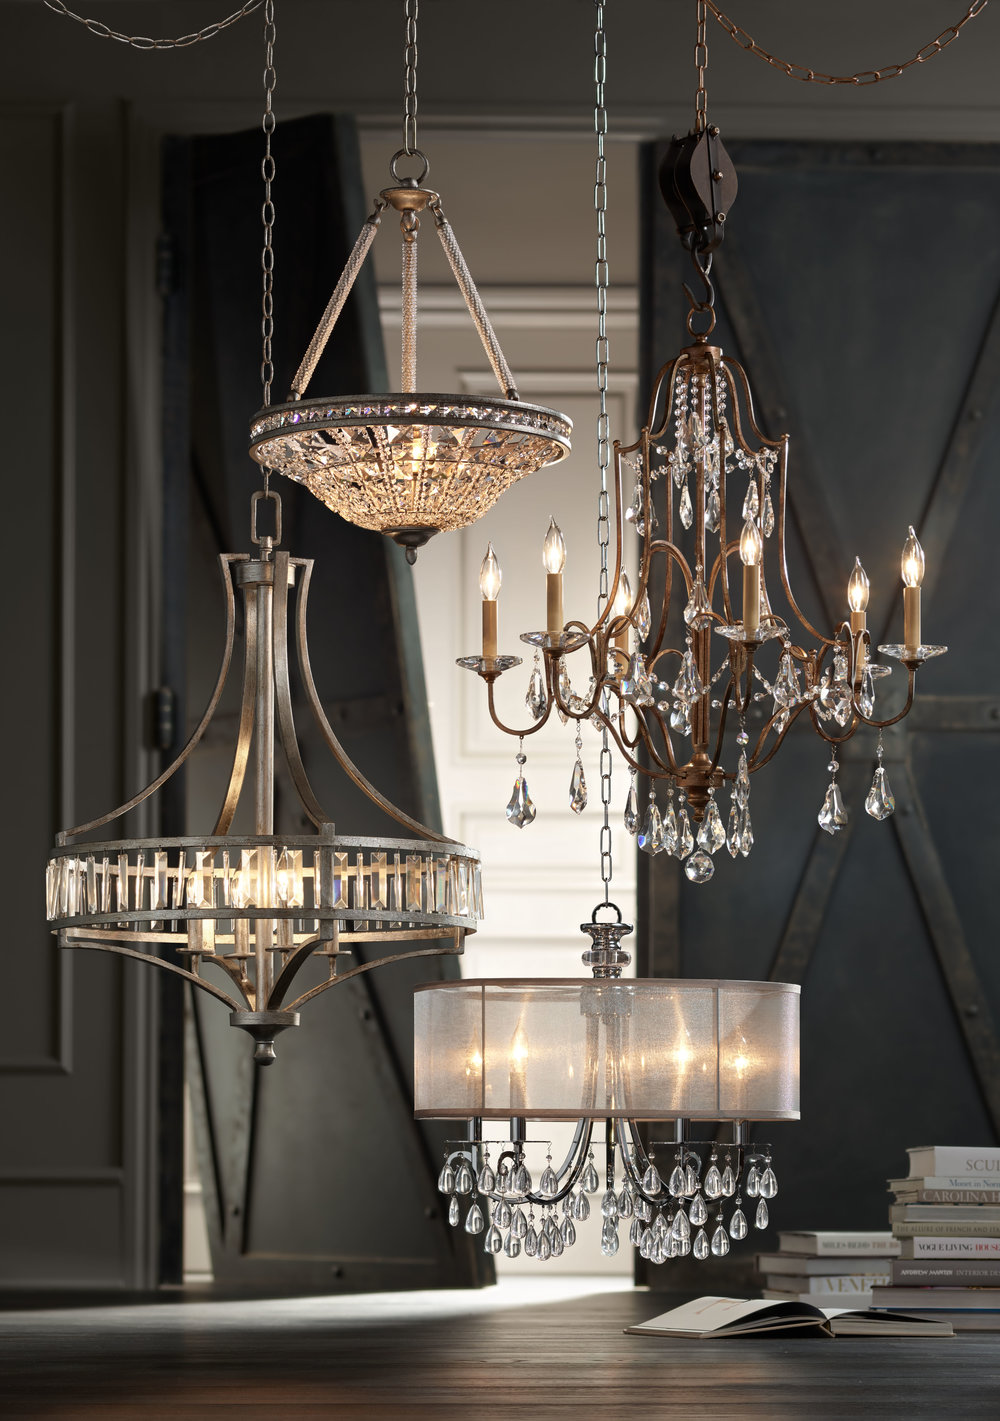 082217-traditional-chandeliers-h.jpg